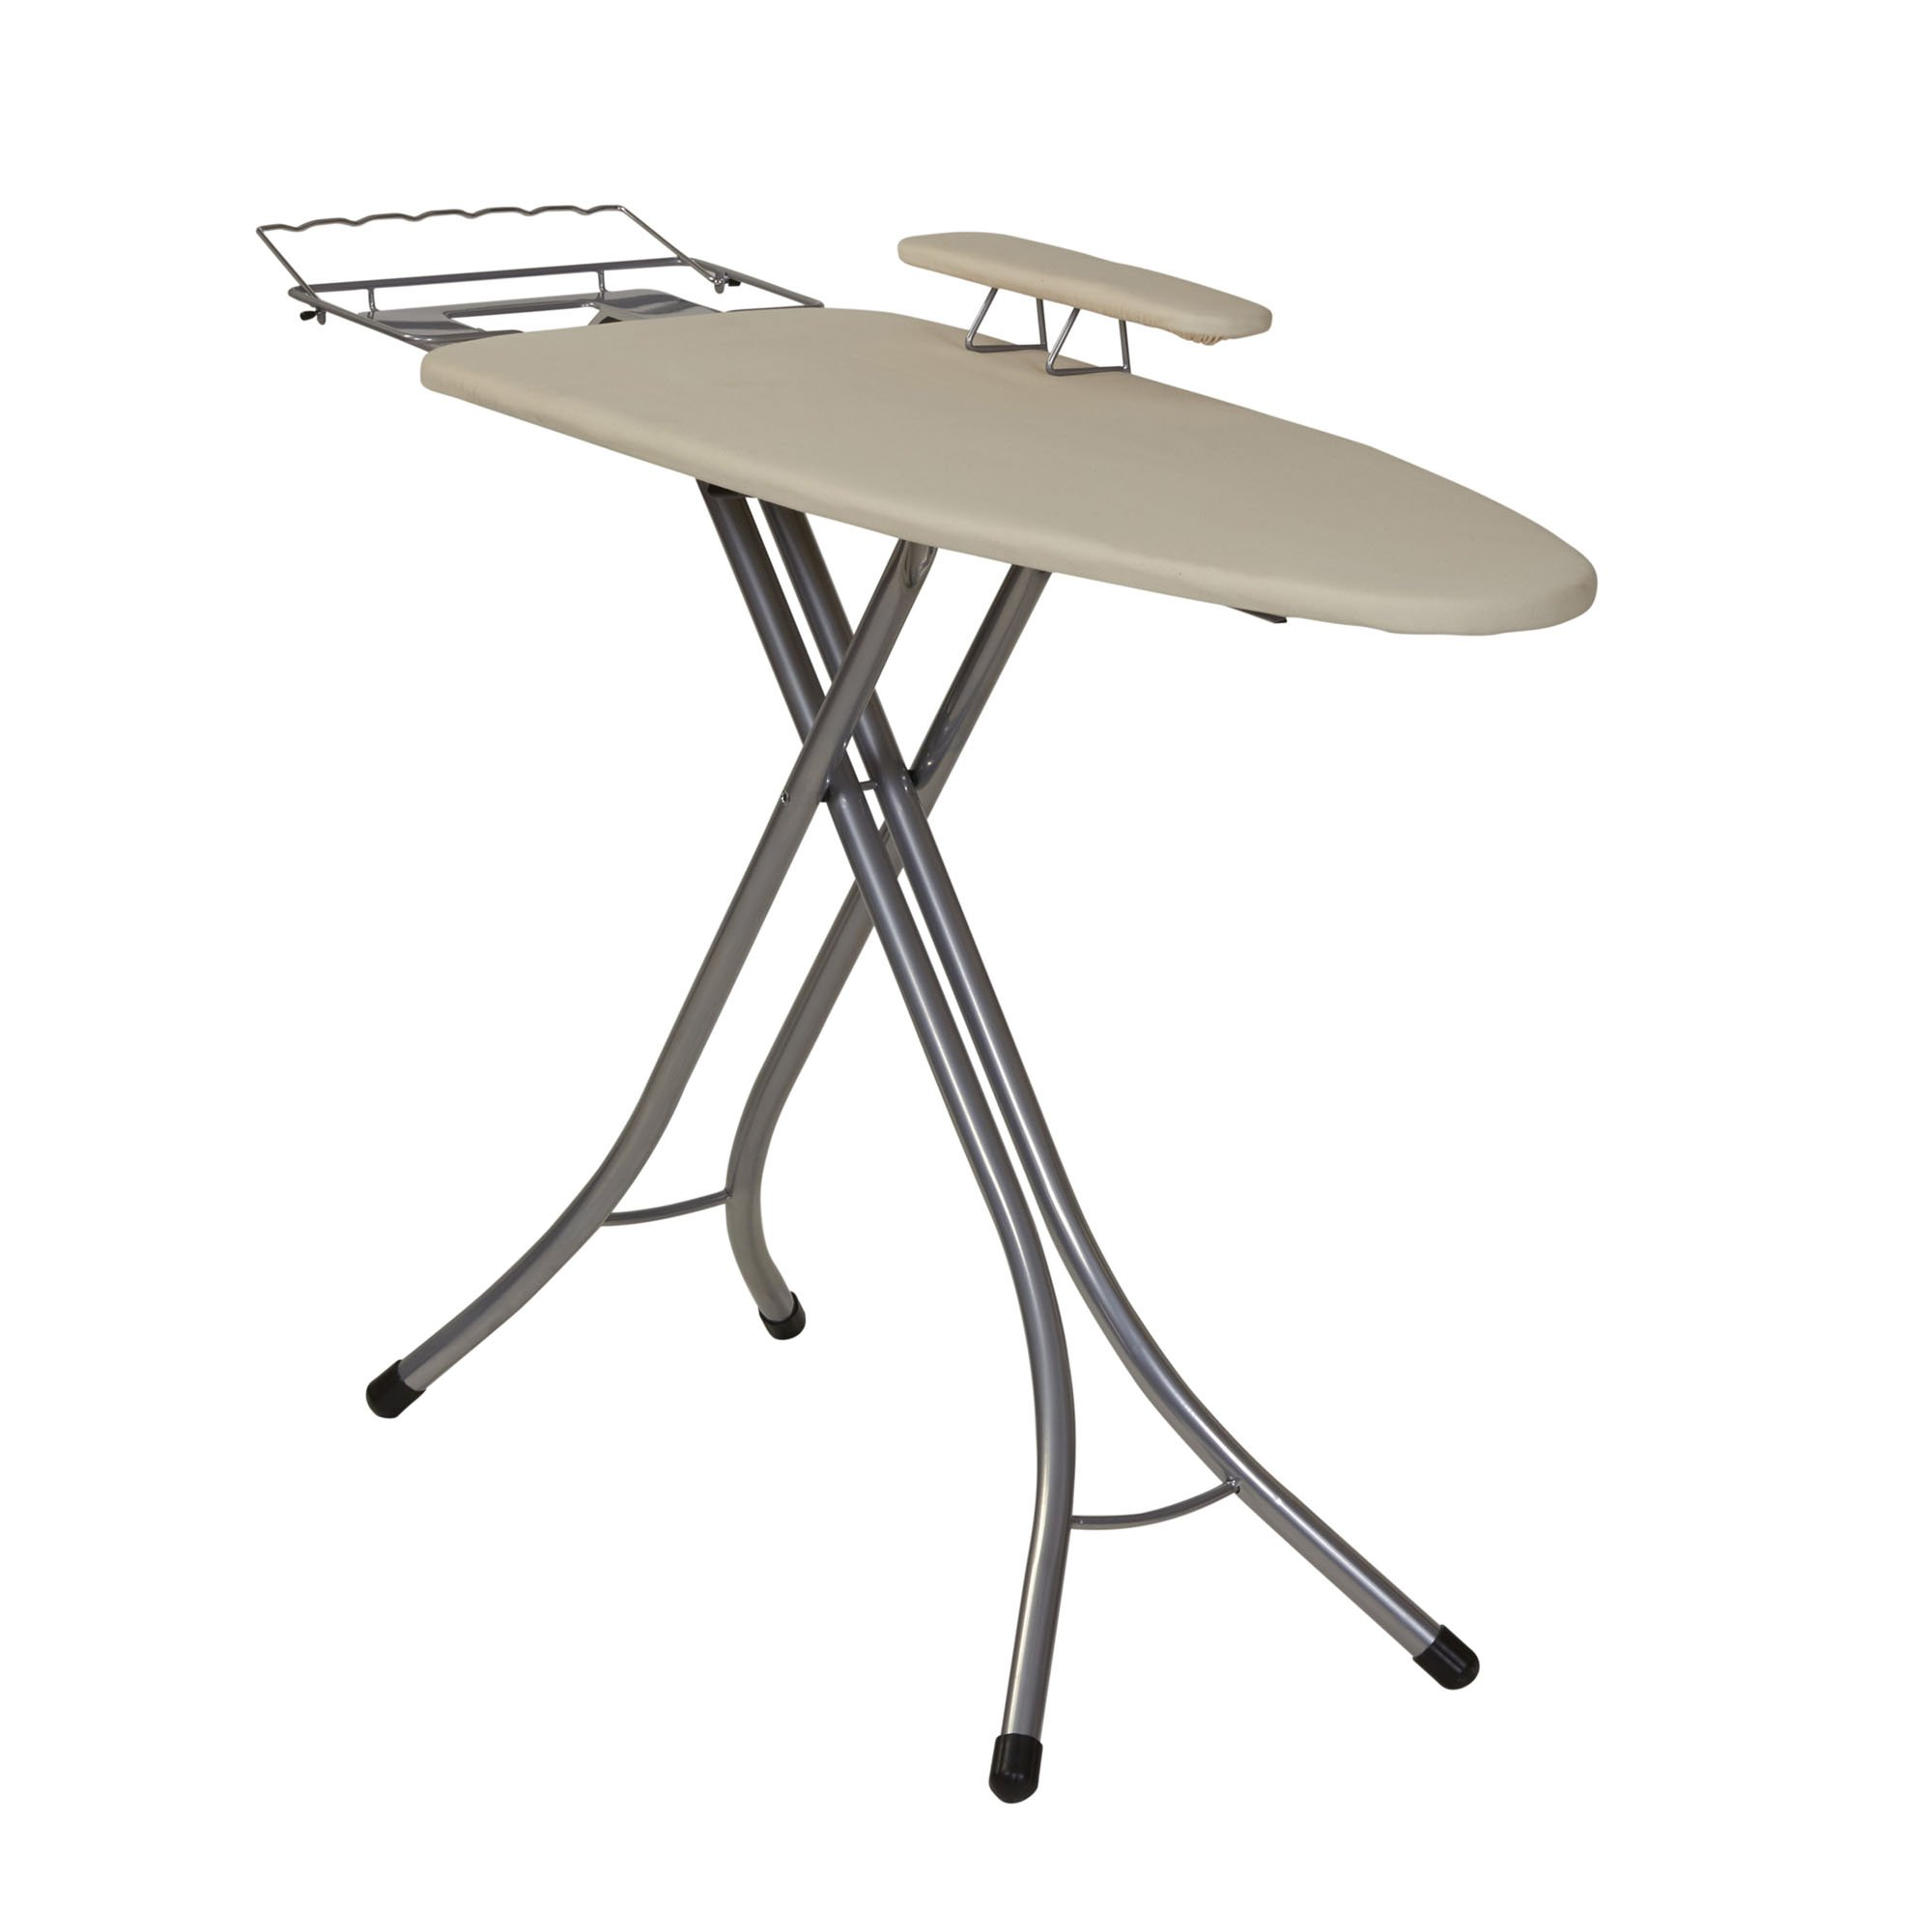 Household Essentials 971840-1 Wide Top 4-Leg Mega Ironing Board with Adjustable Height and Bonus Sleeve Board | Natural Cotton Cover